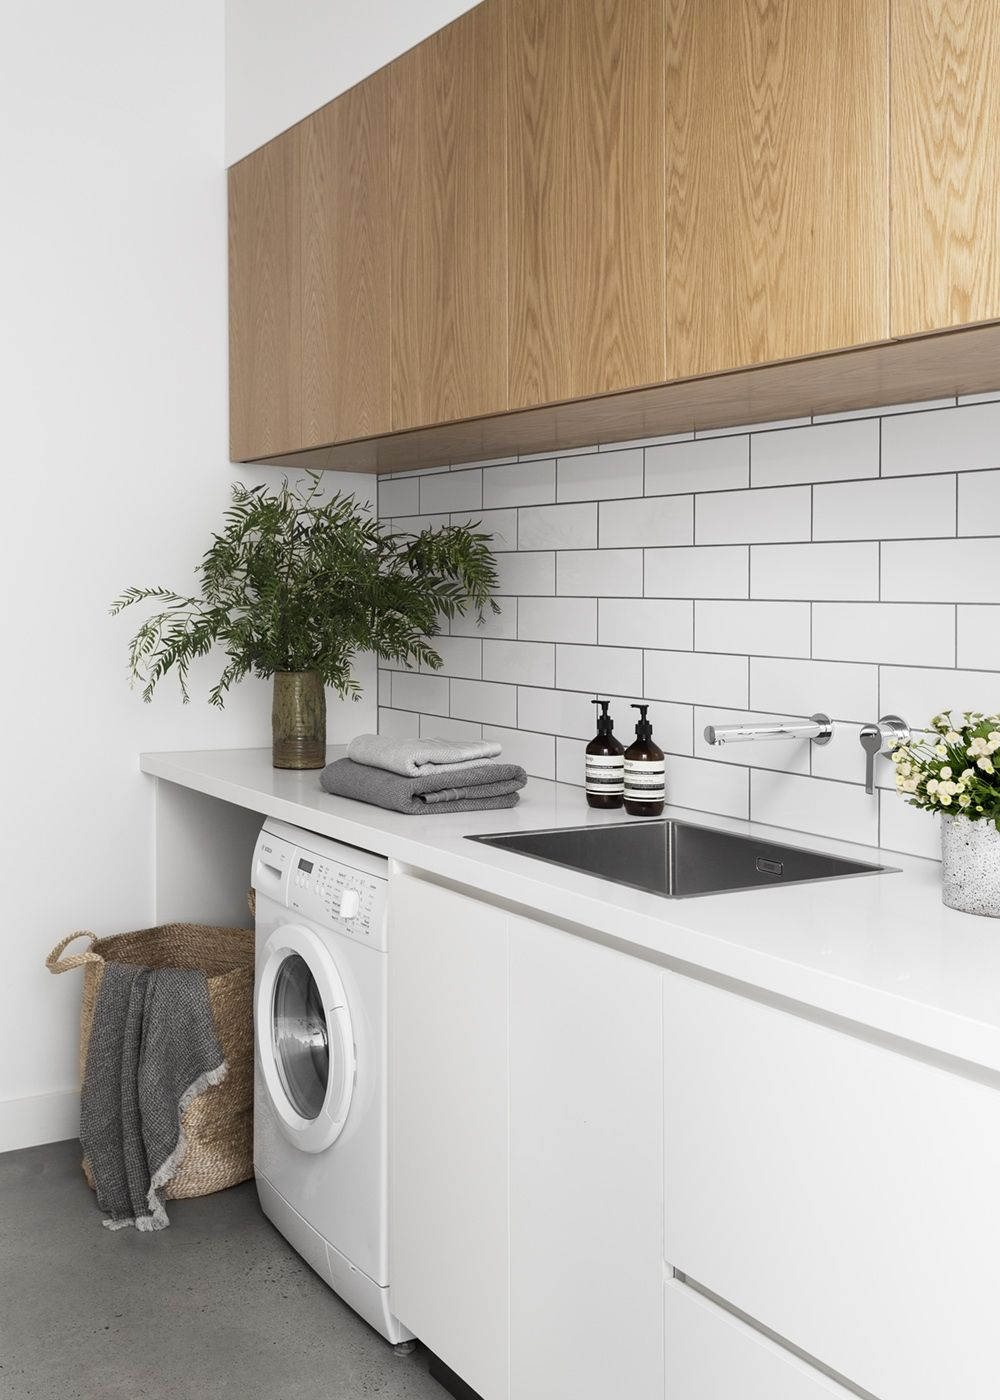 Kitchen Laundry Room Design: The Laundry — A Cantilever Approach